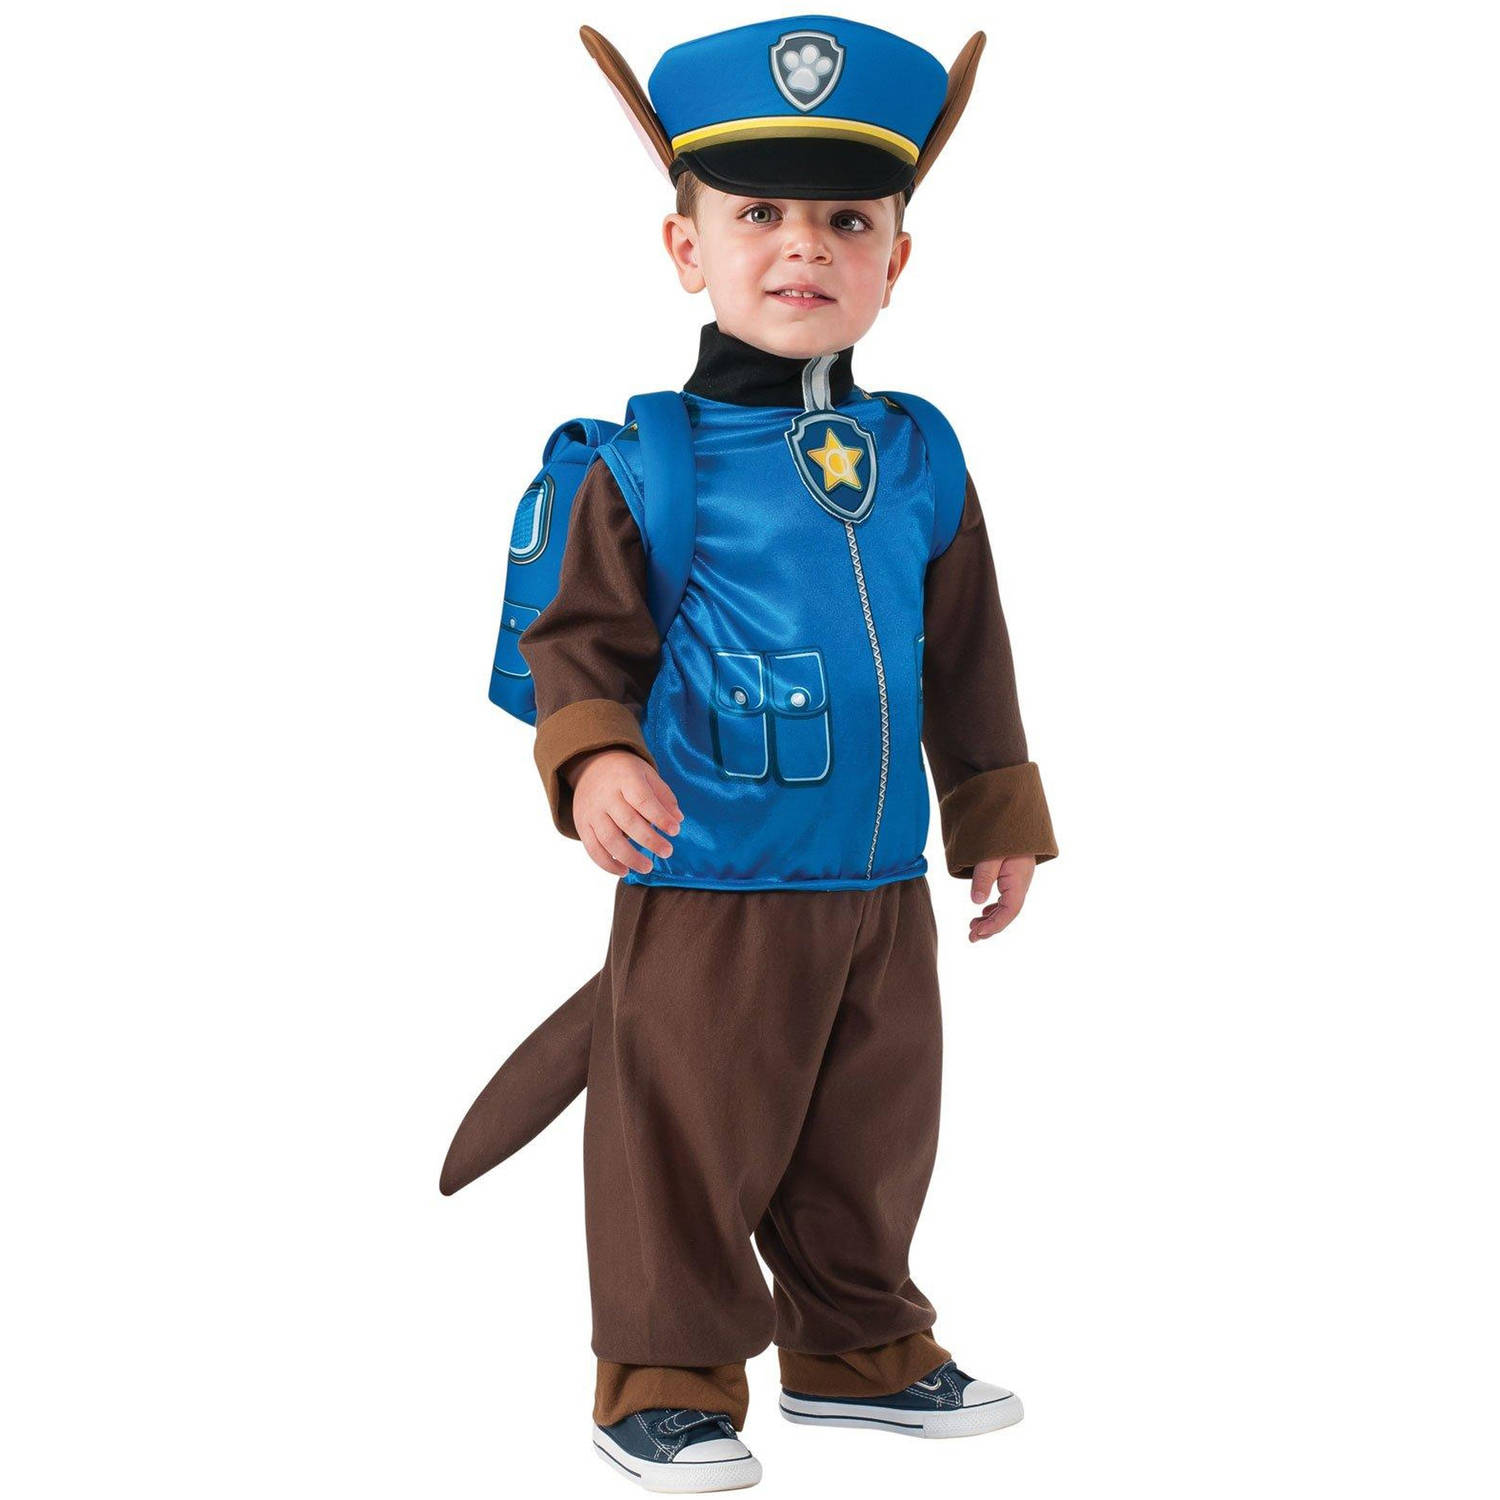 sc 1 st  Walmart & Paw Patrol Chase Child Halloween Costume Size Small (4-6) - Walmart.com